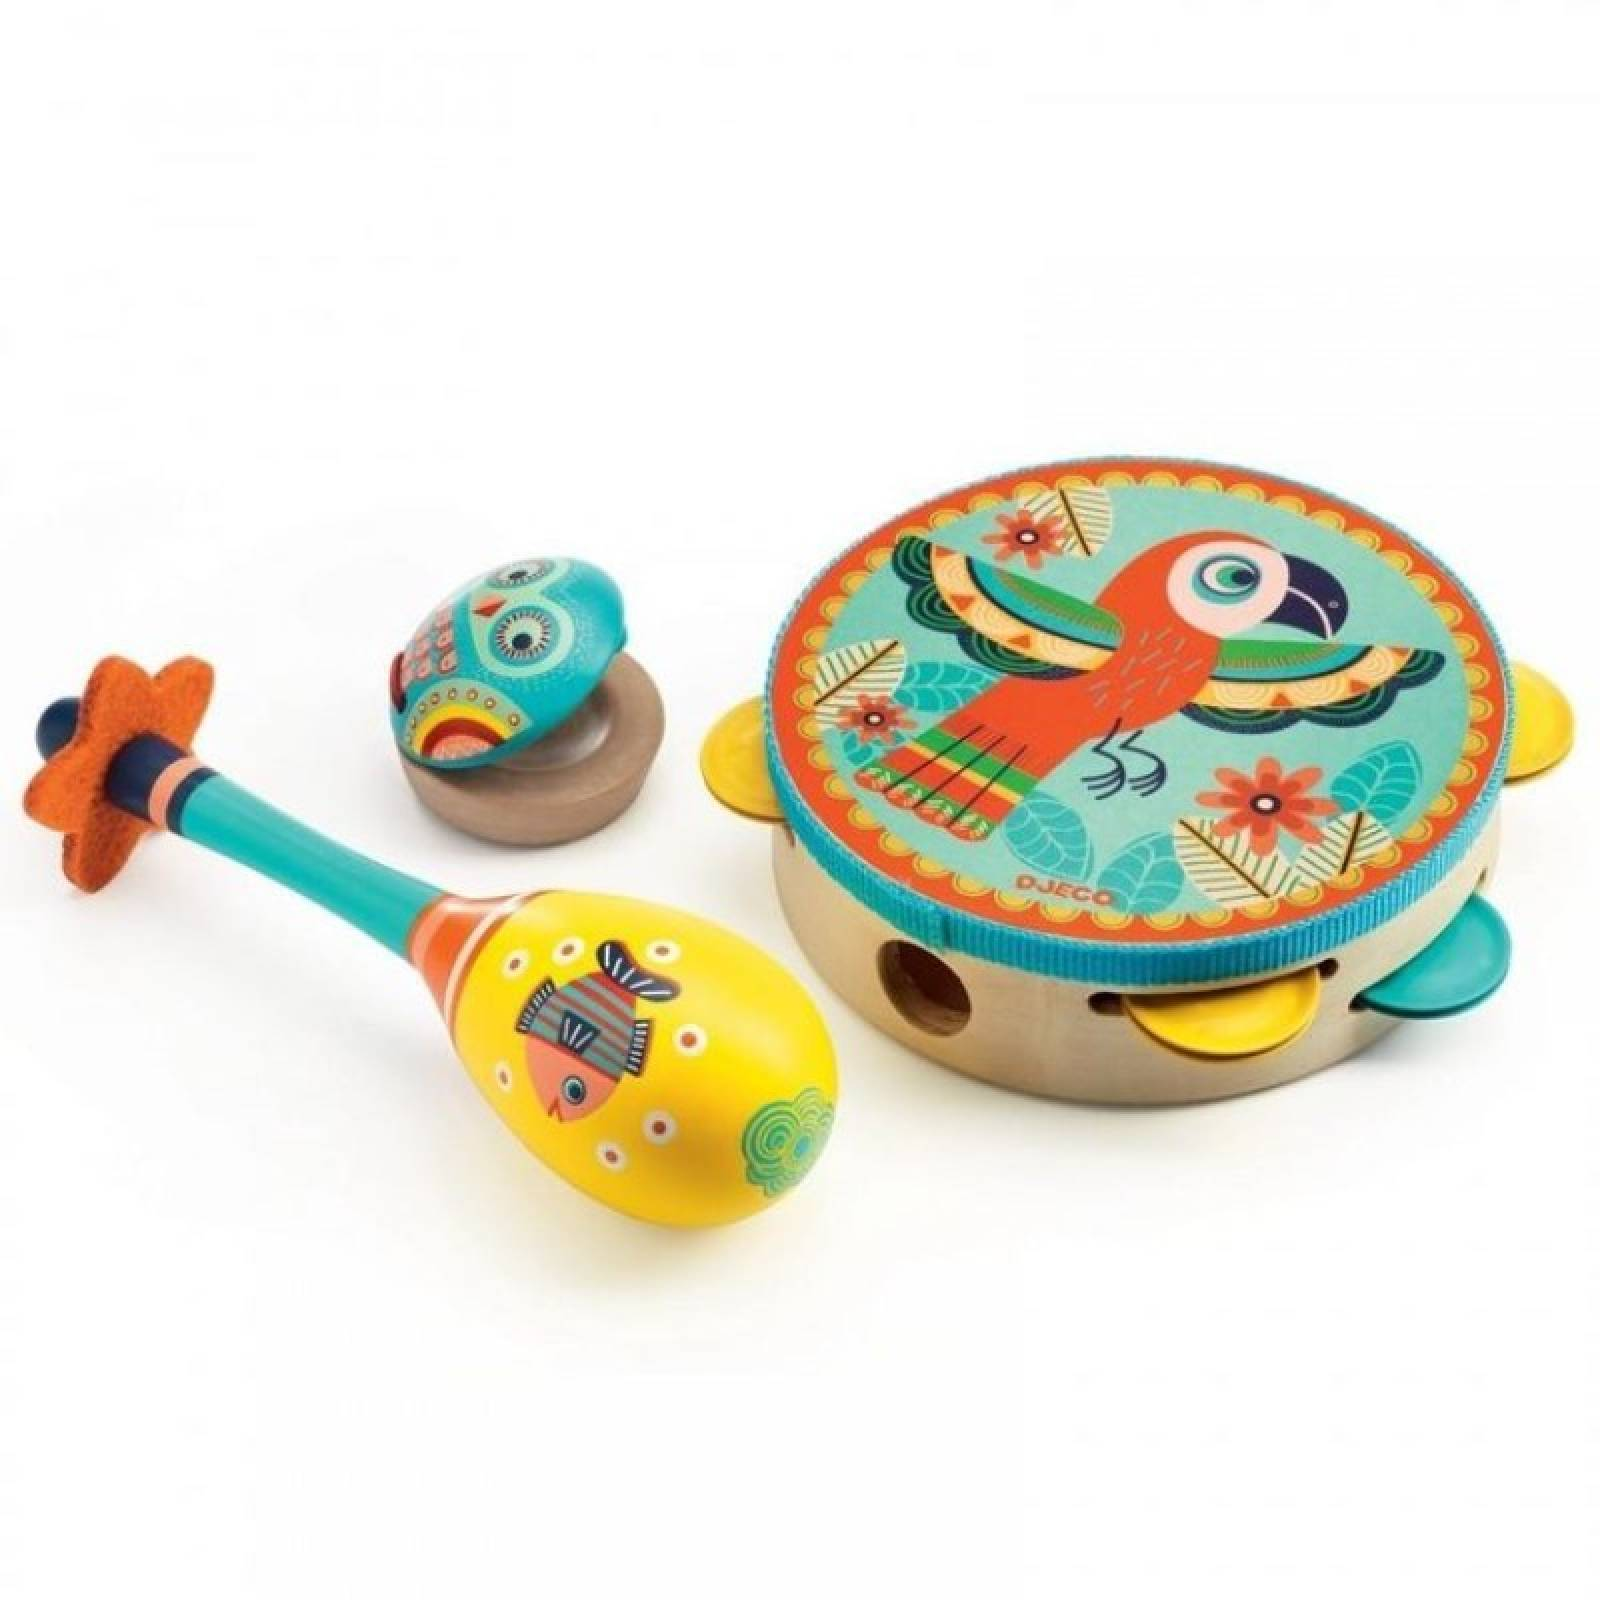 Animambo Set Of 3 Wooden Instruments By Djeco 3+